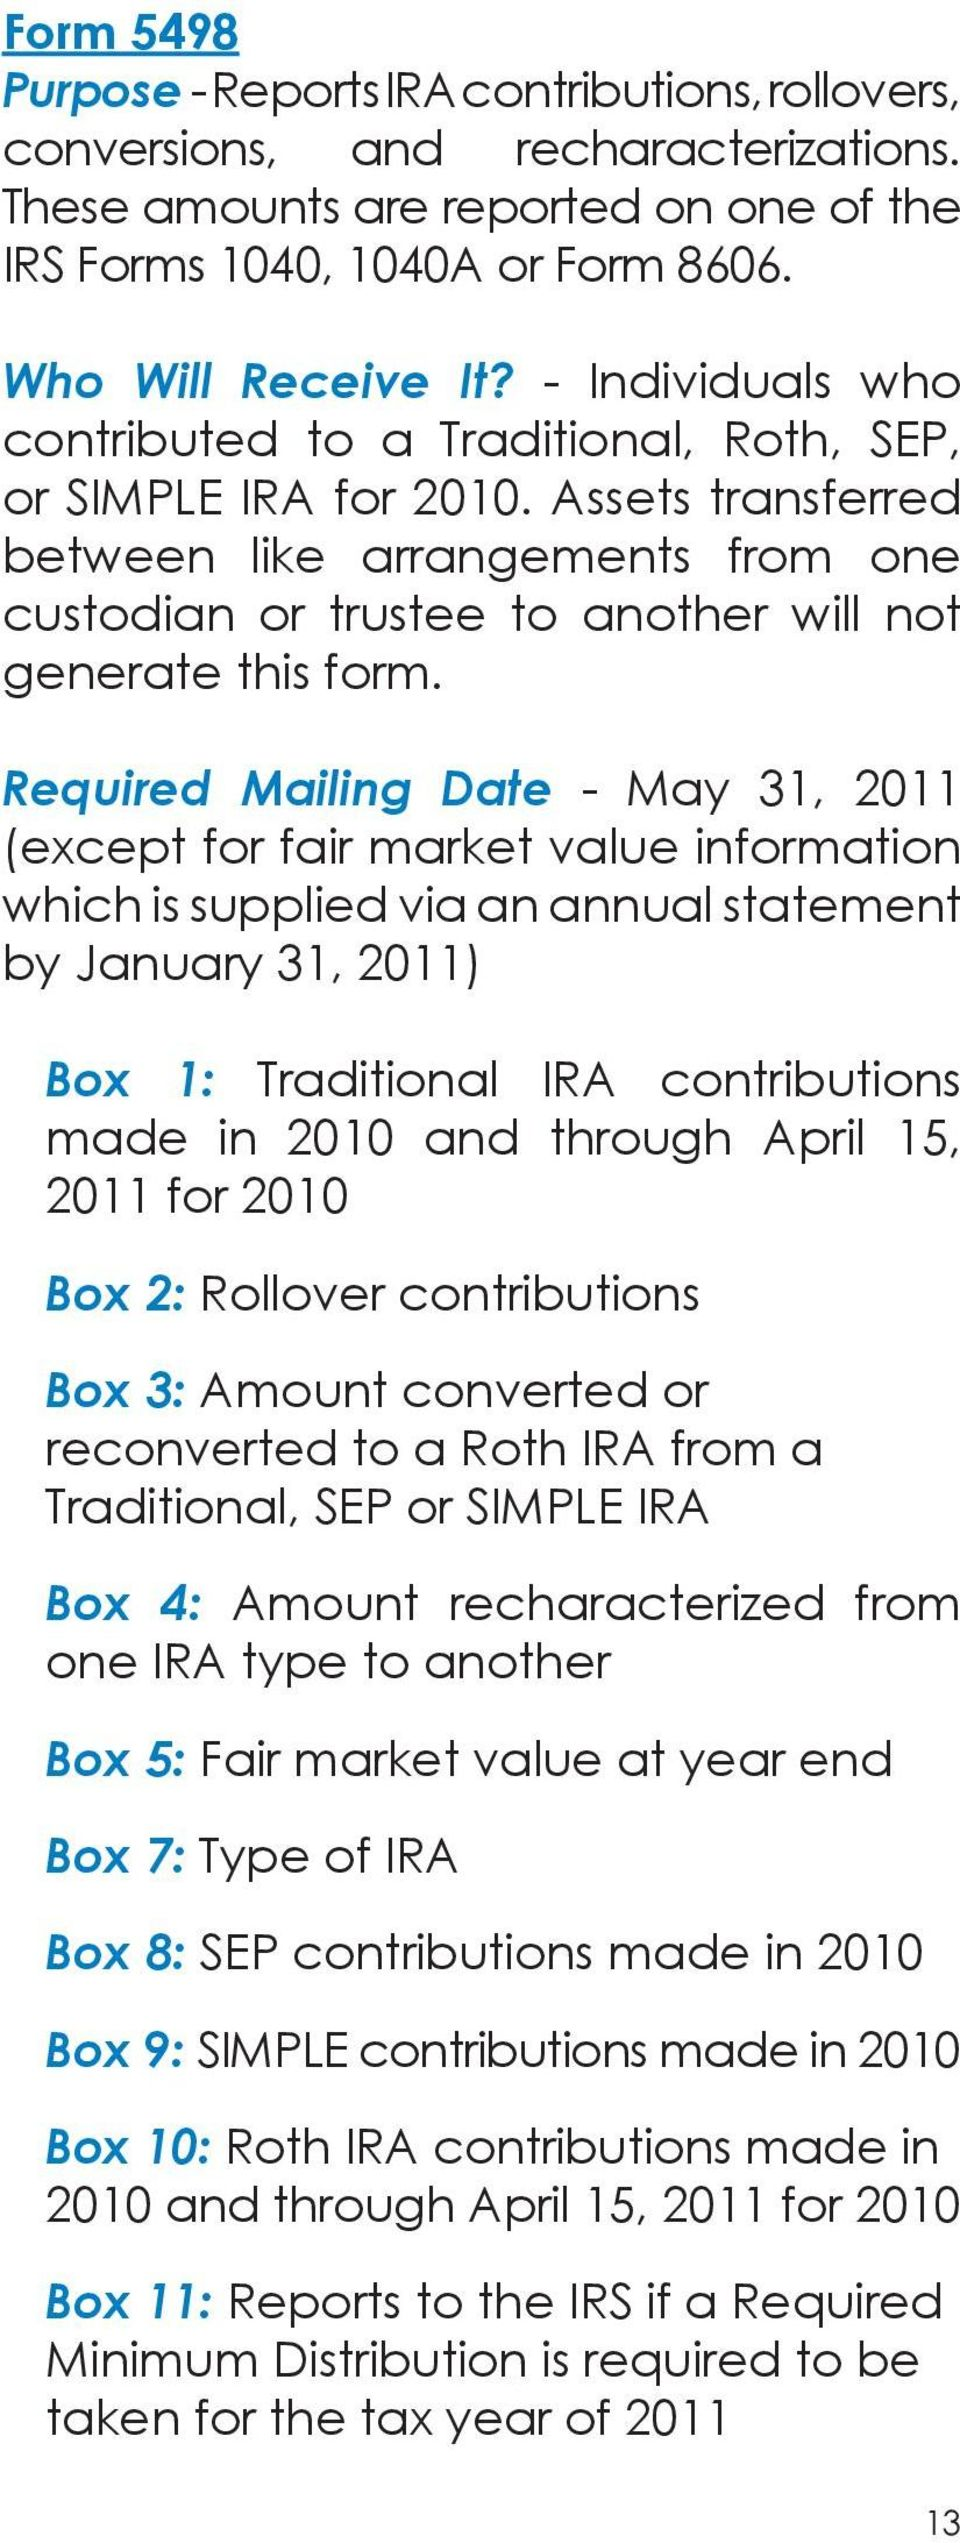 Required Mailing Date - May 31, 2011 (except for fair market value information which is supplied via an annual statement by January 31, 2011) Box 1: Traditional IRA contributions made in 2010 and